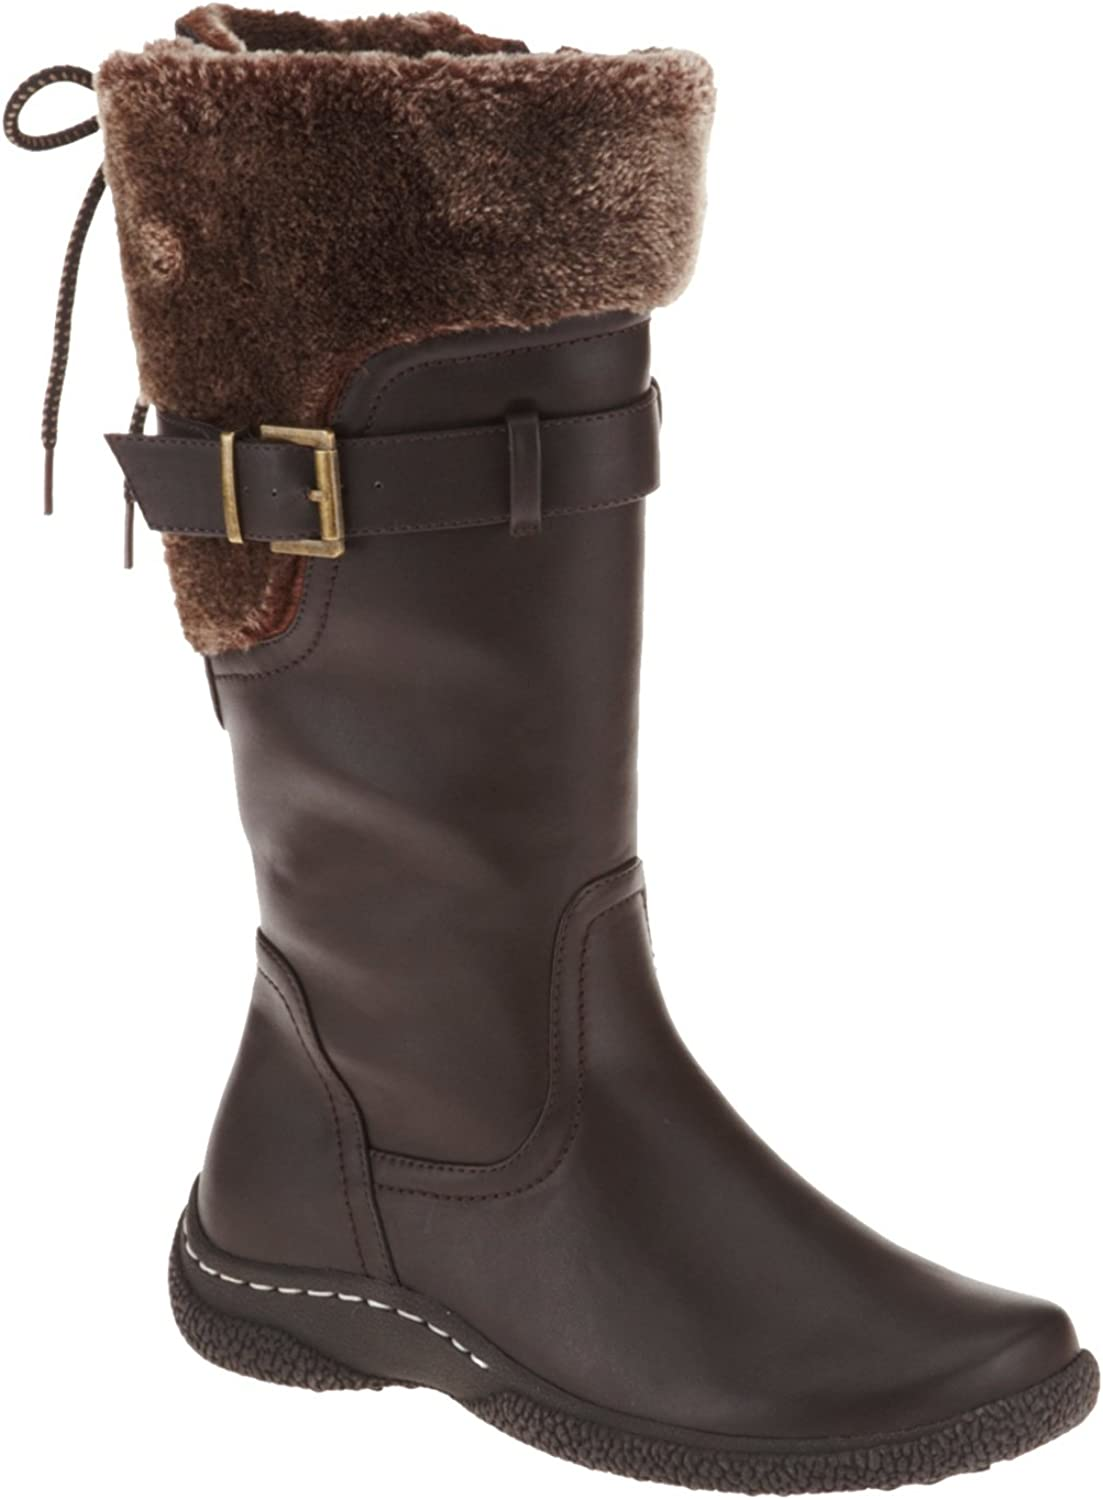 Wanderlust Belina Tall Boots Daily bargain sale Discount is also underway Calf